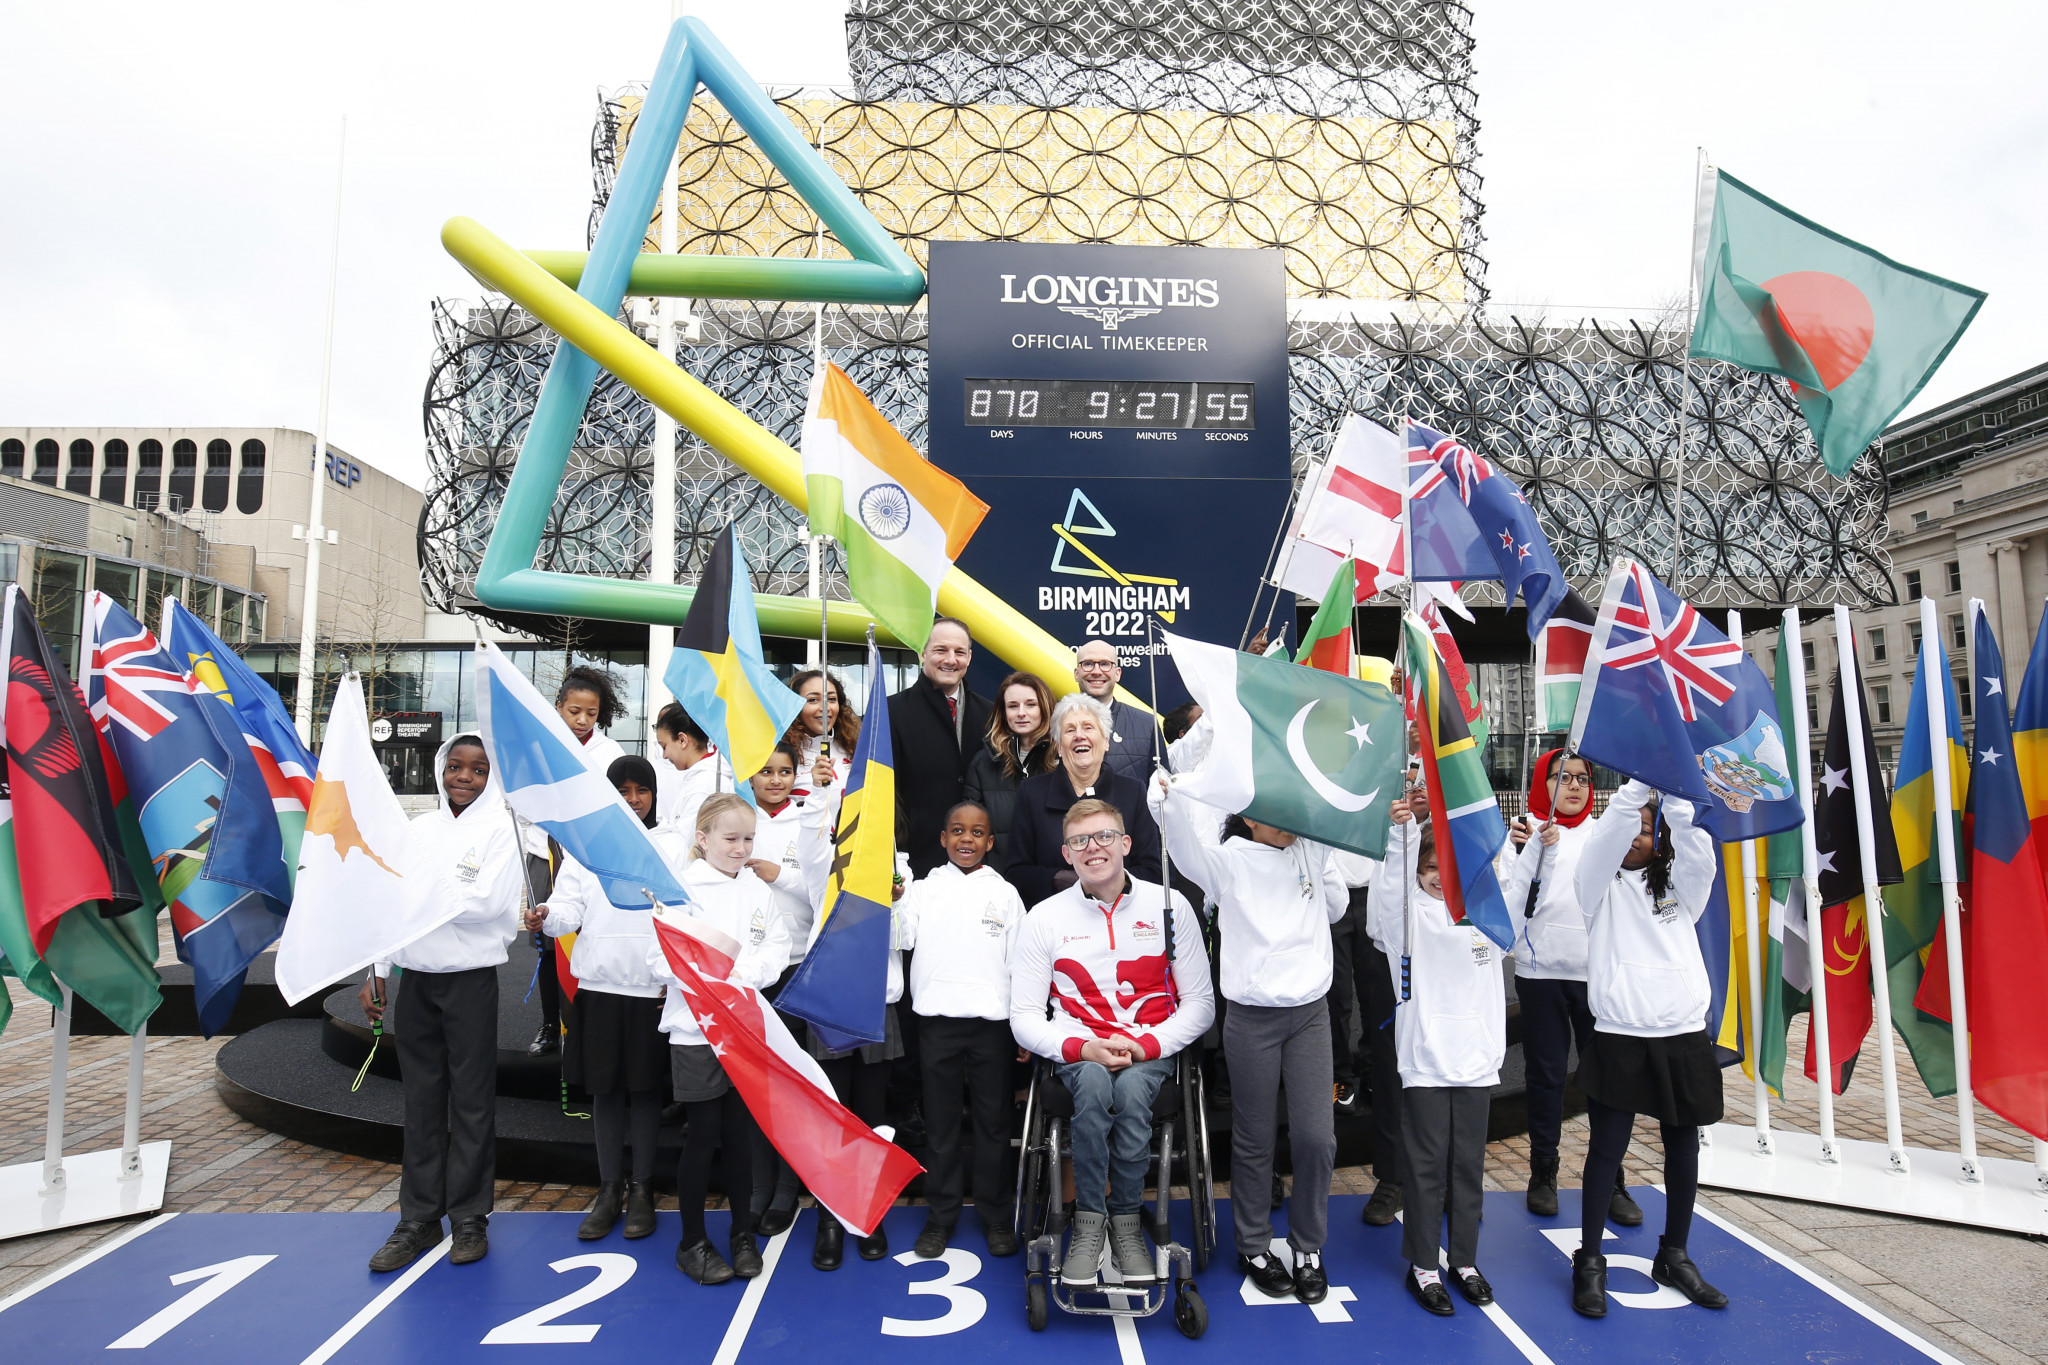 Birmingham 2022 has faced criticism over its lack of diversity on its Board of Directors and Executive Management team ©Getty Images